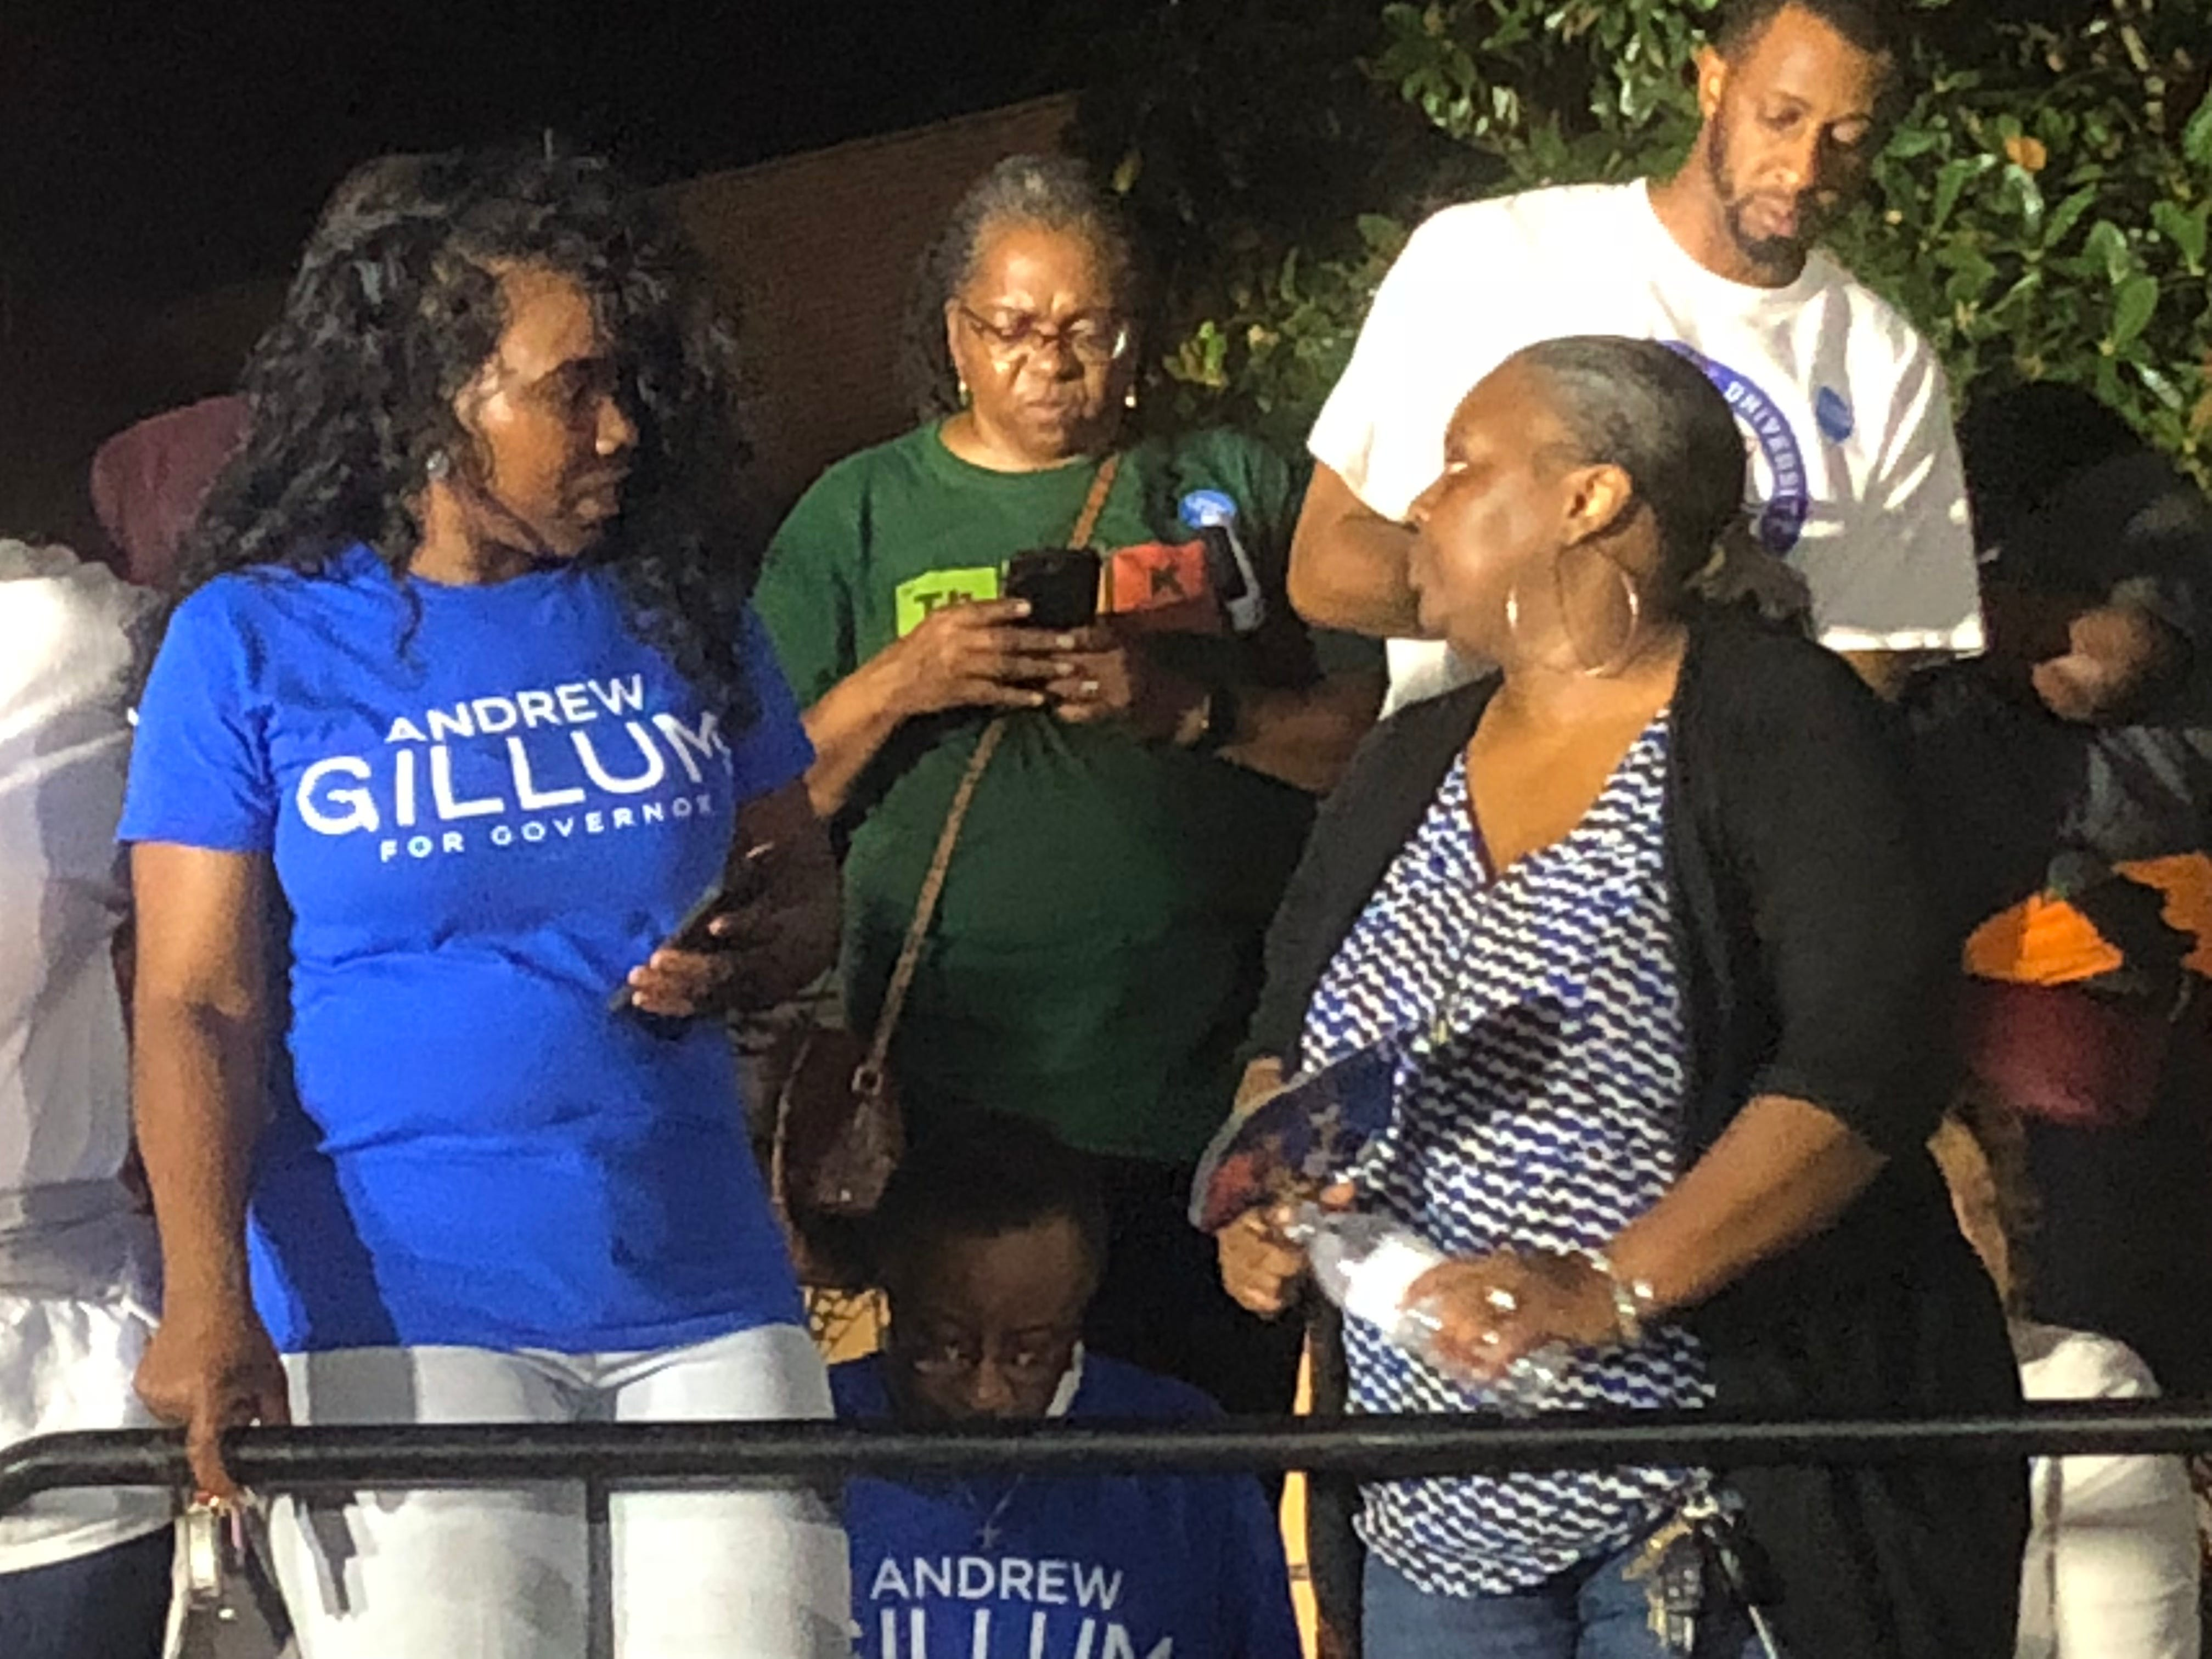 Supporters for Andrew Gillum wait for election results at his headquarters.